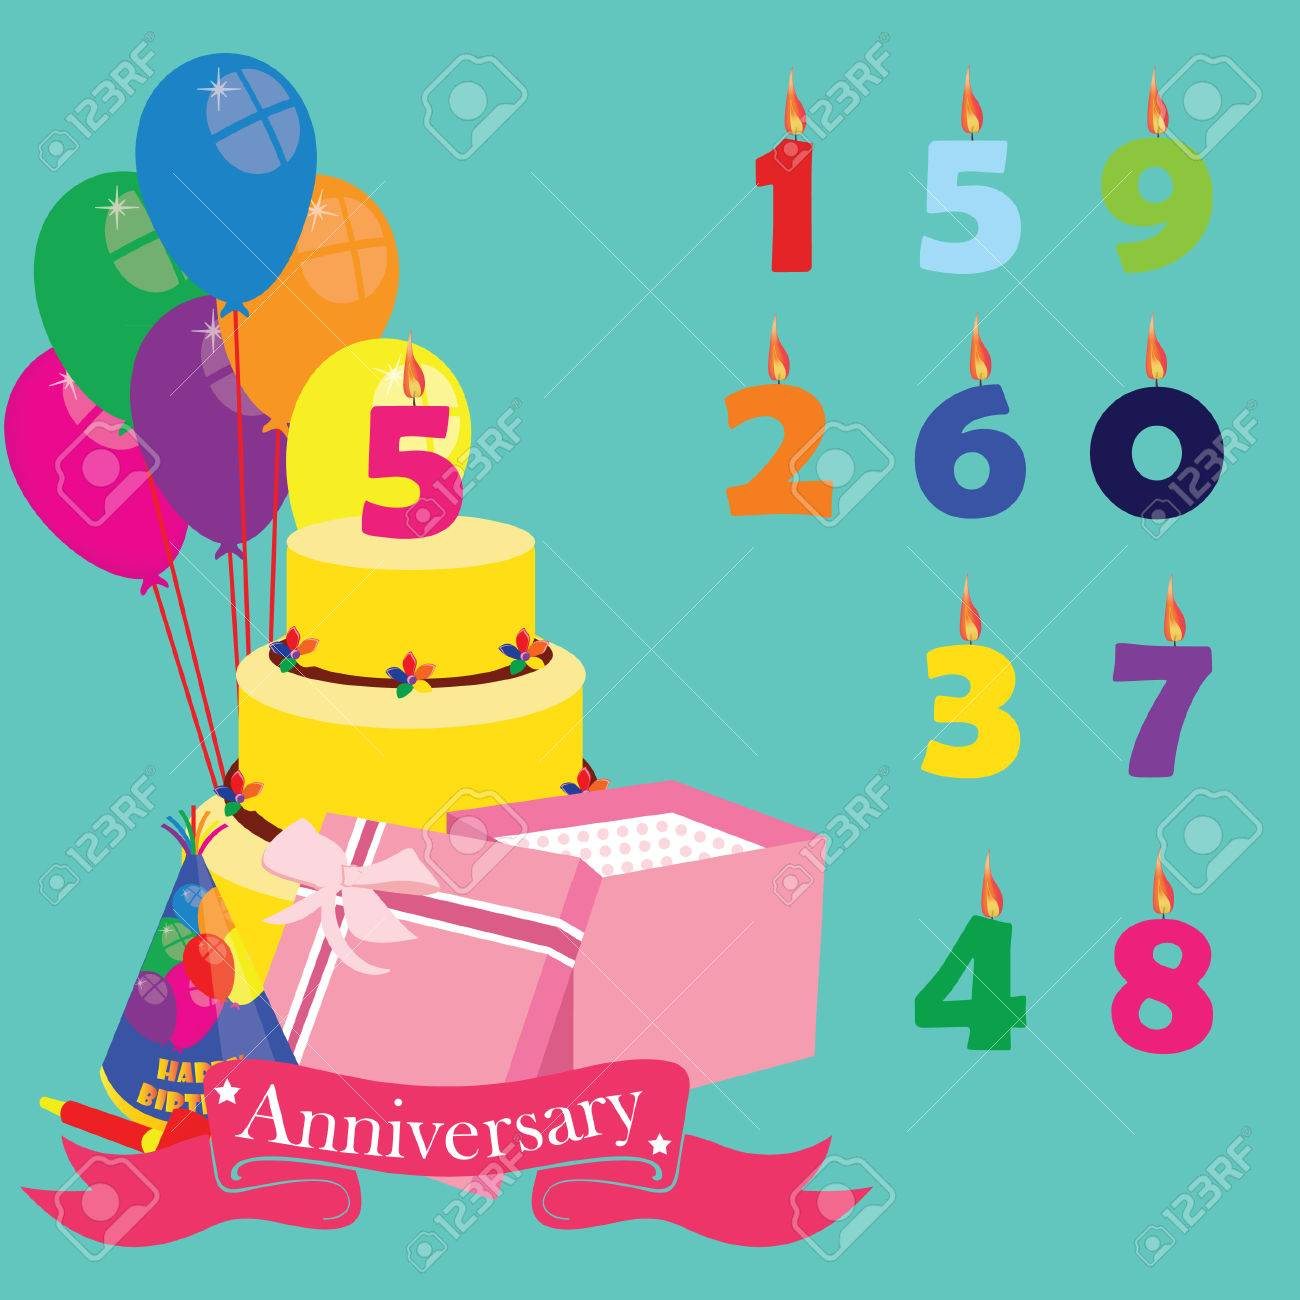 Anniversary Background With Icons And Elements Birthday Cake Candles Numbers Balloons Gift